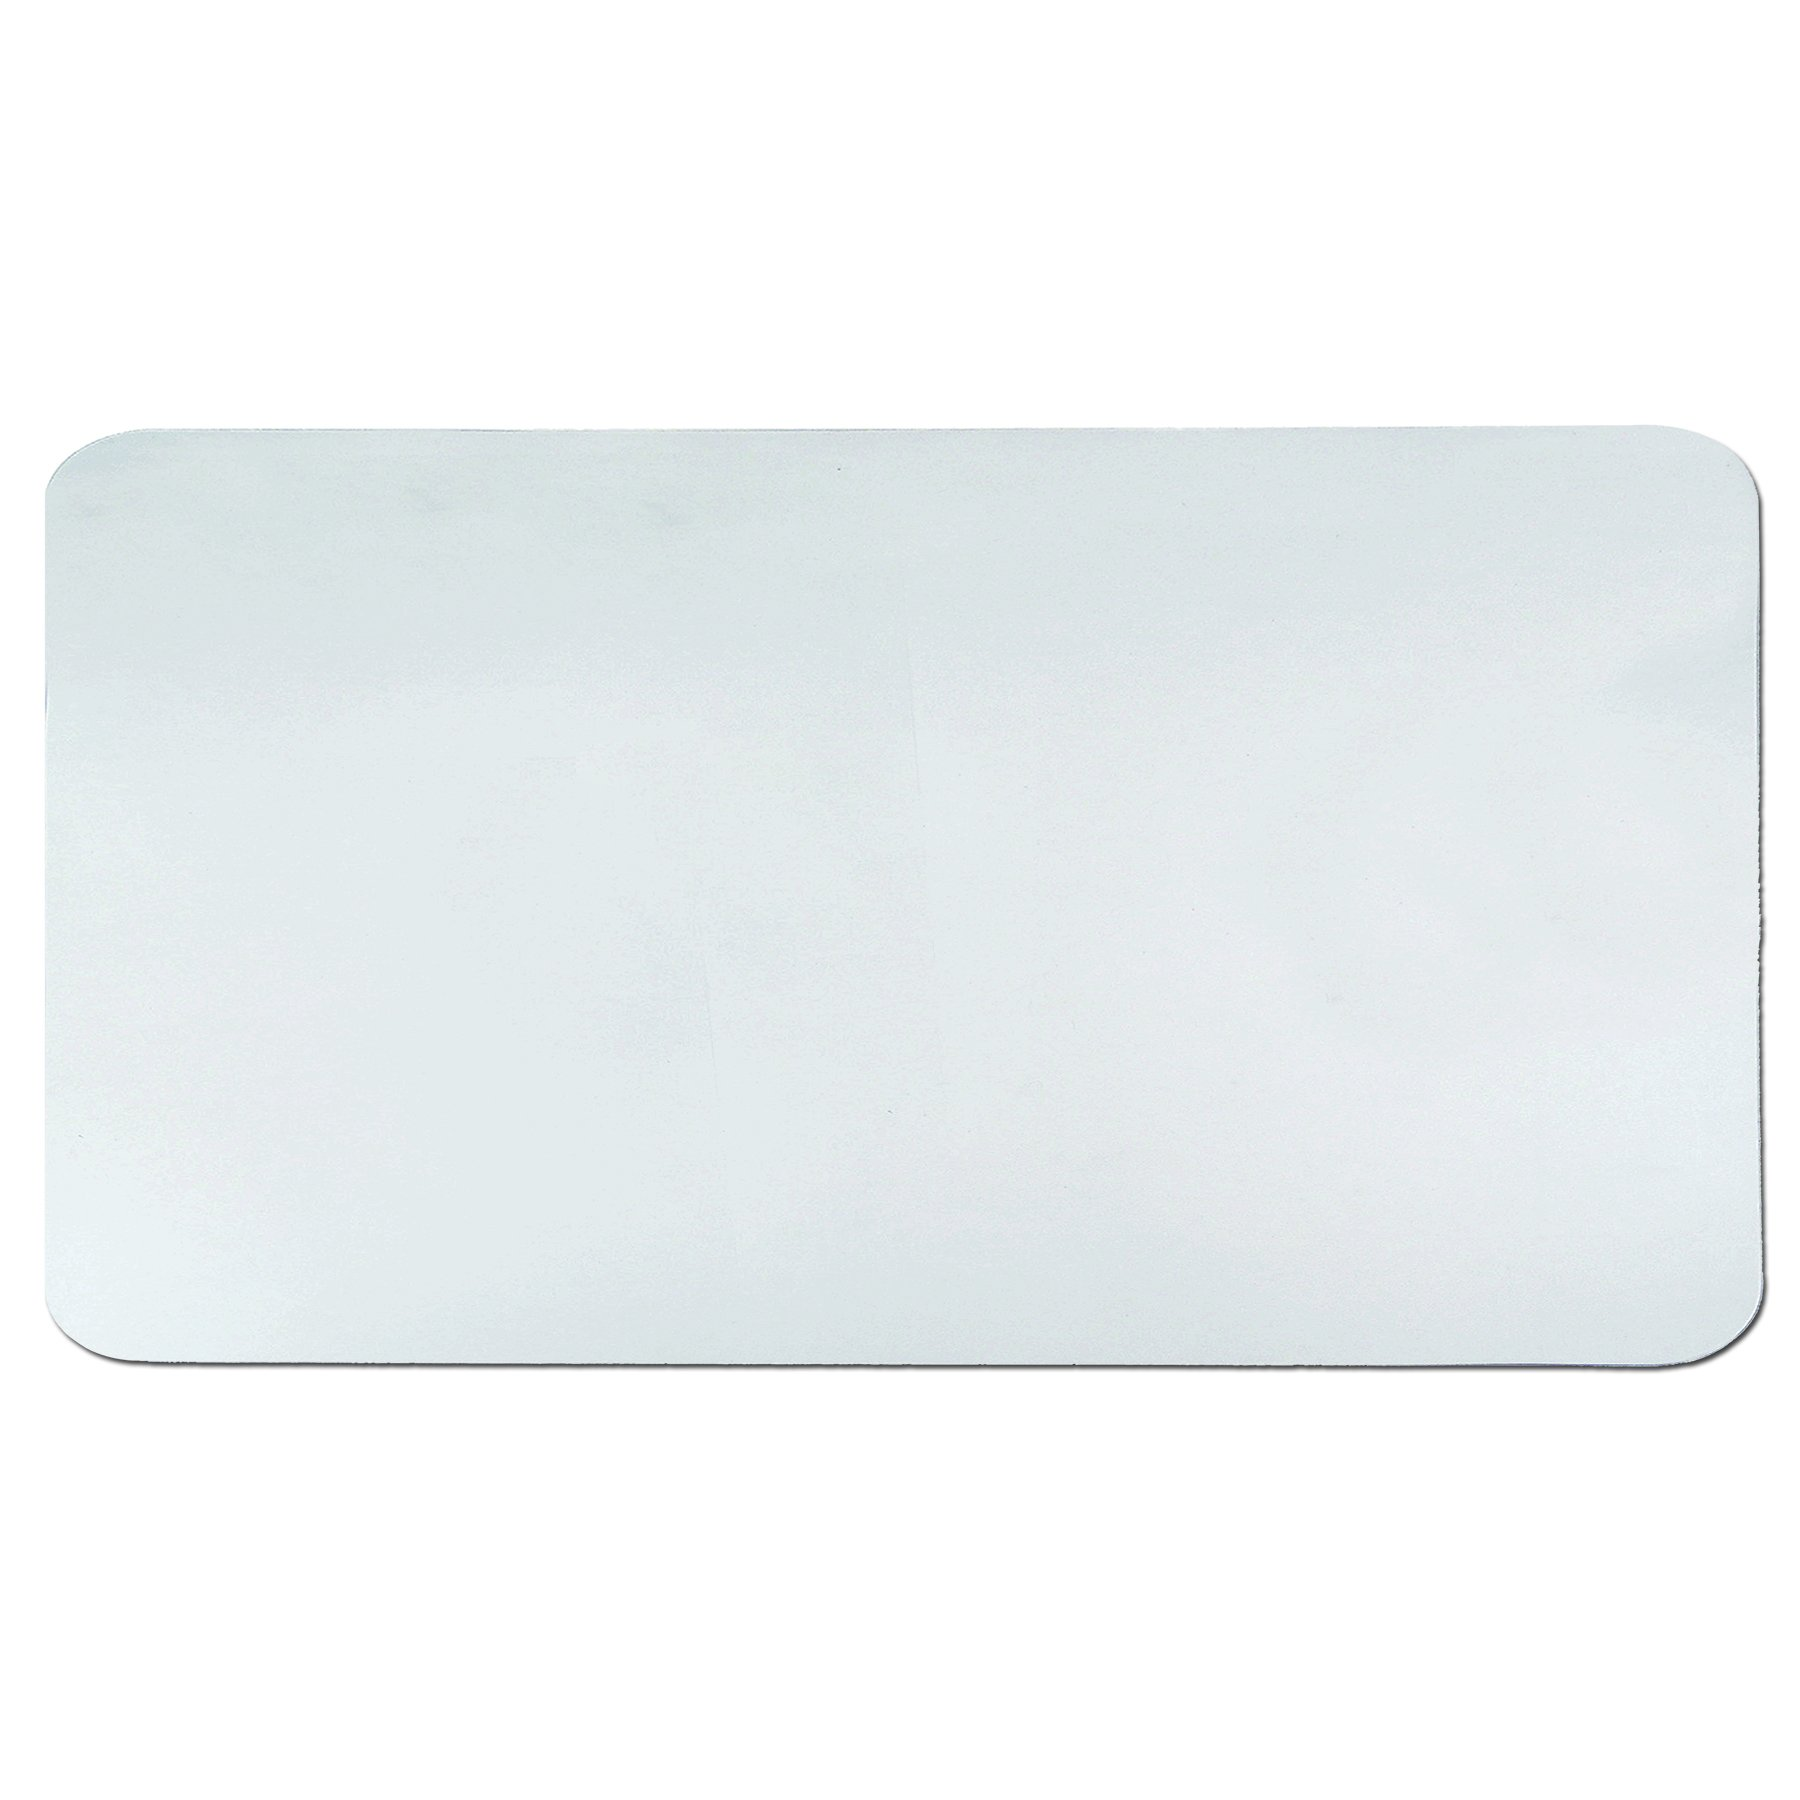 Artistic 20'' x 36'' Krystal View Clear Antimicrobial Desk Pad Organizer with Microban, Clear